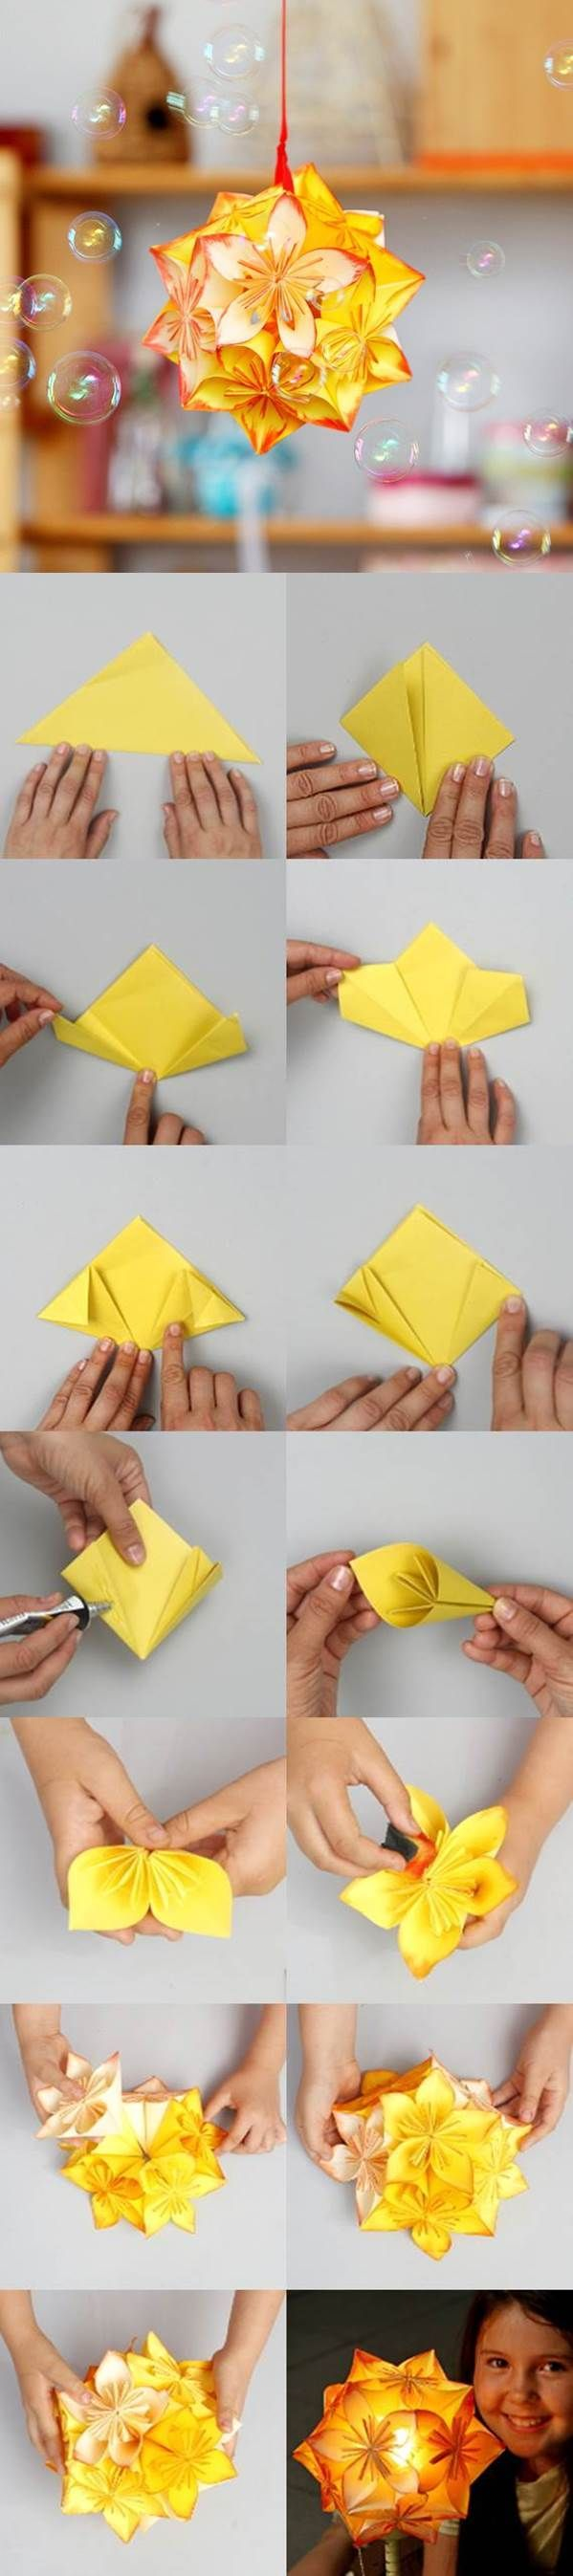 How to make origami kusudama flower step by step - Here Is A Nice Diy Tutorial On How To Make An Origami Kusudama Flower Decoration